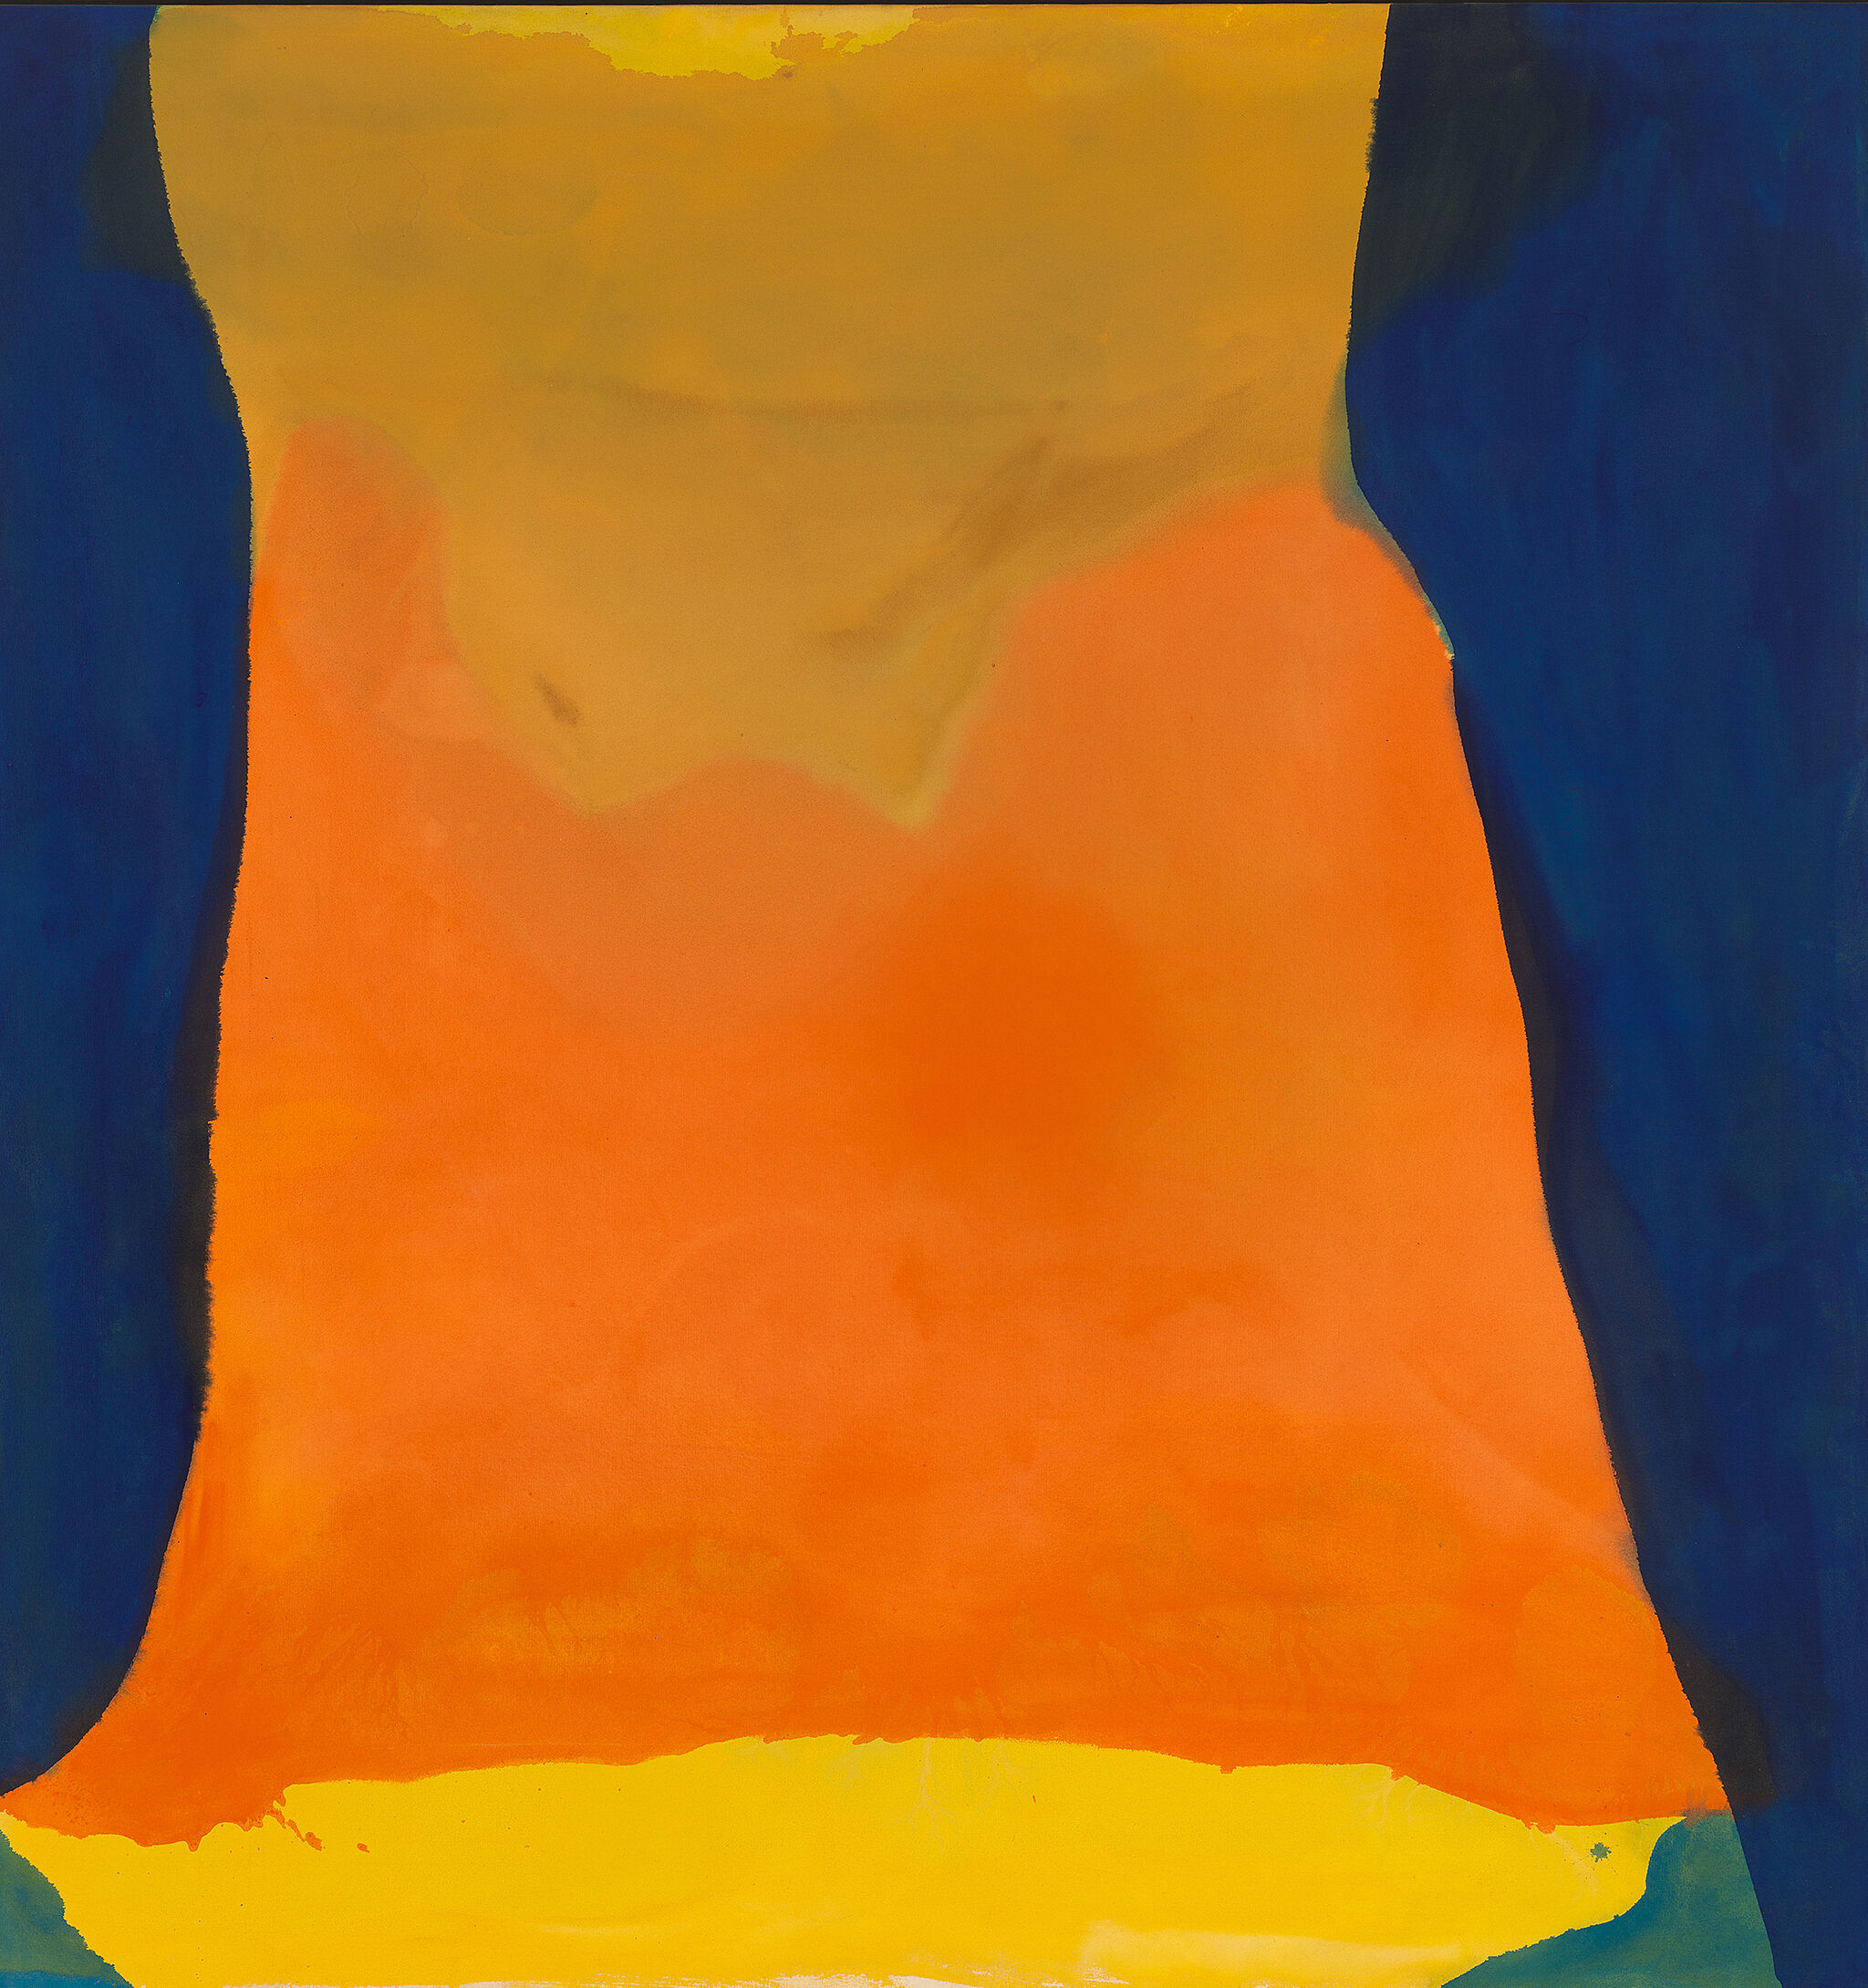 An abstract painting depicting organic shapes in varying shades of orange and yellow on a deep blue background